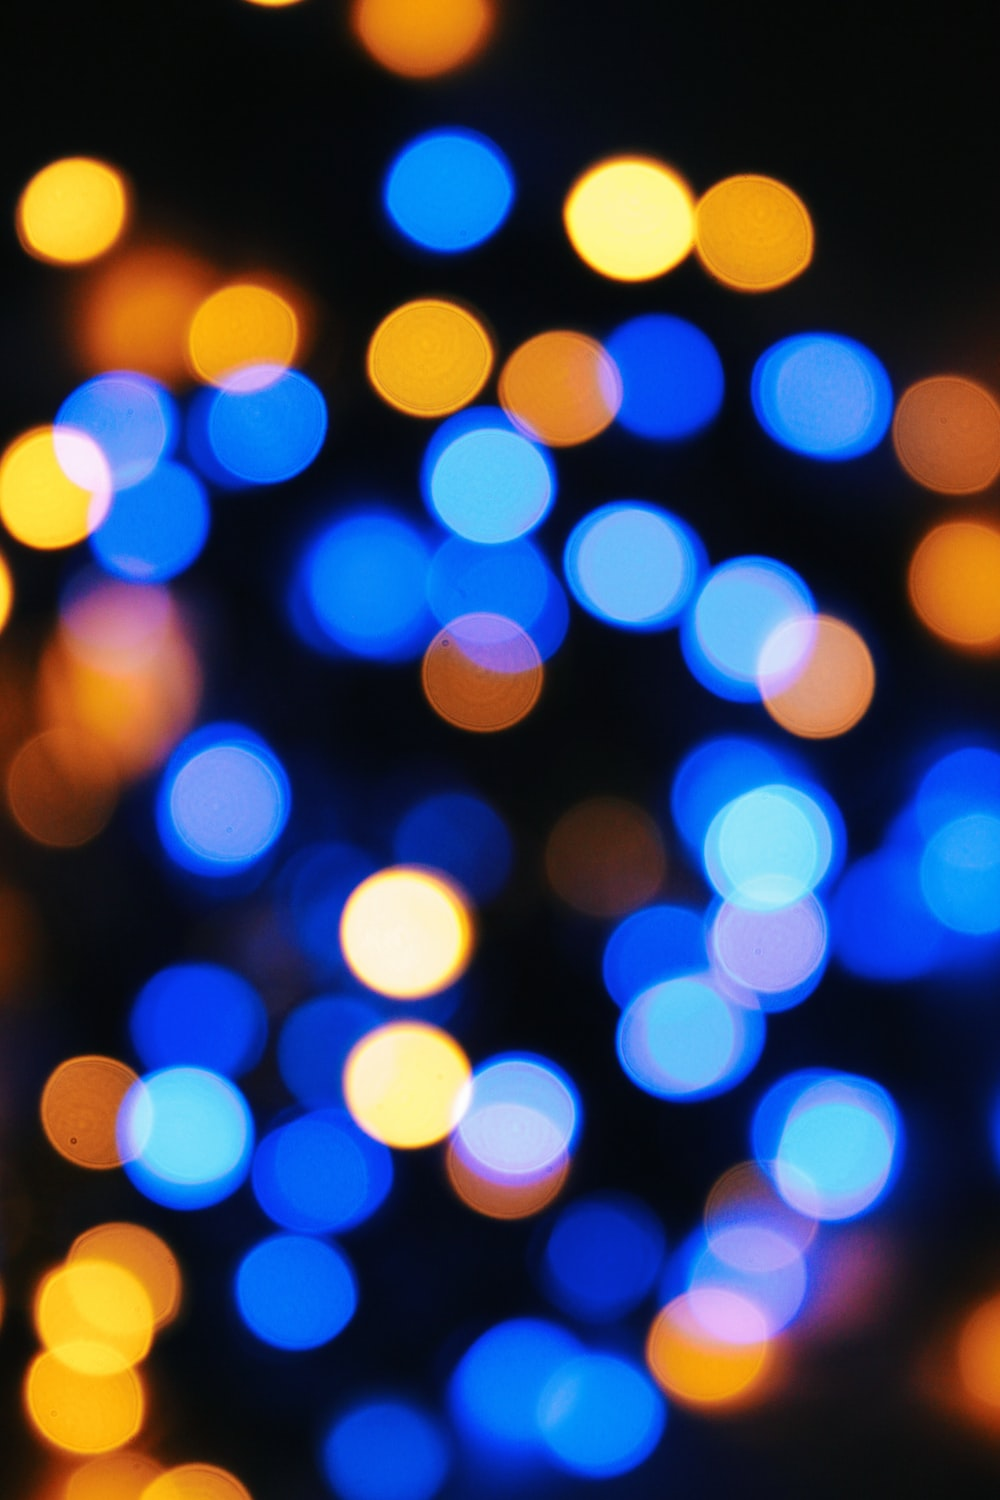 500 Stunning Bokeh Pictures [HD] Download Images Stock 1000x1500